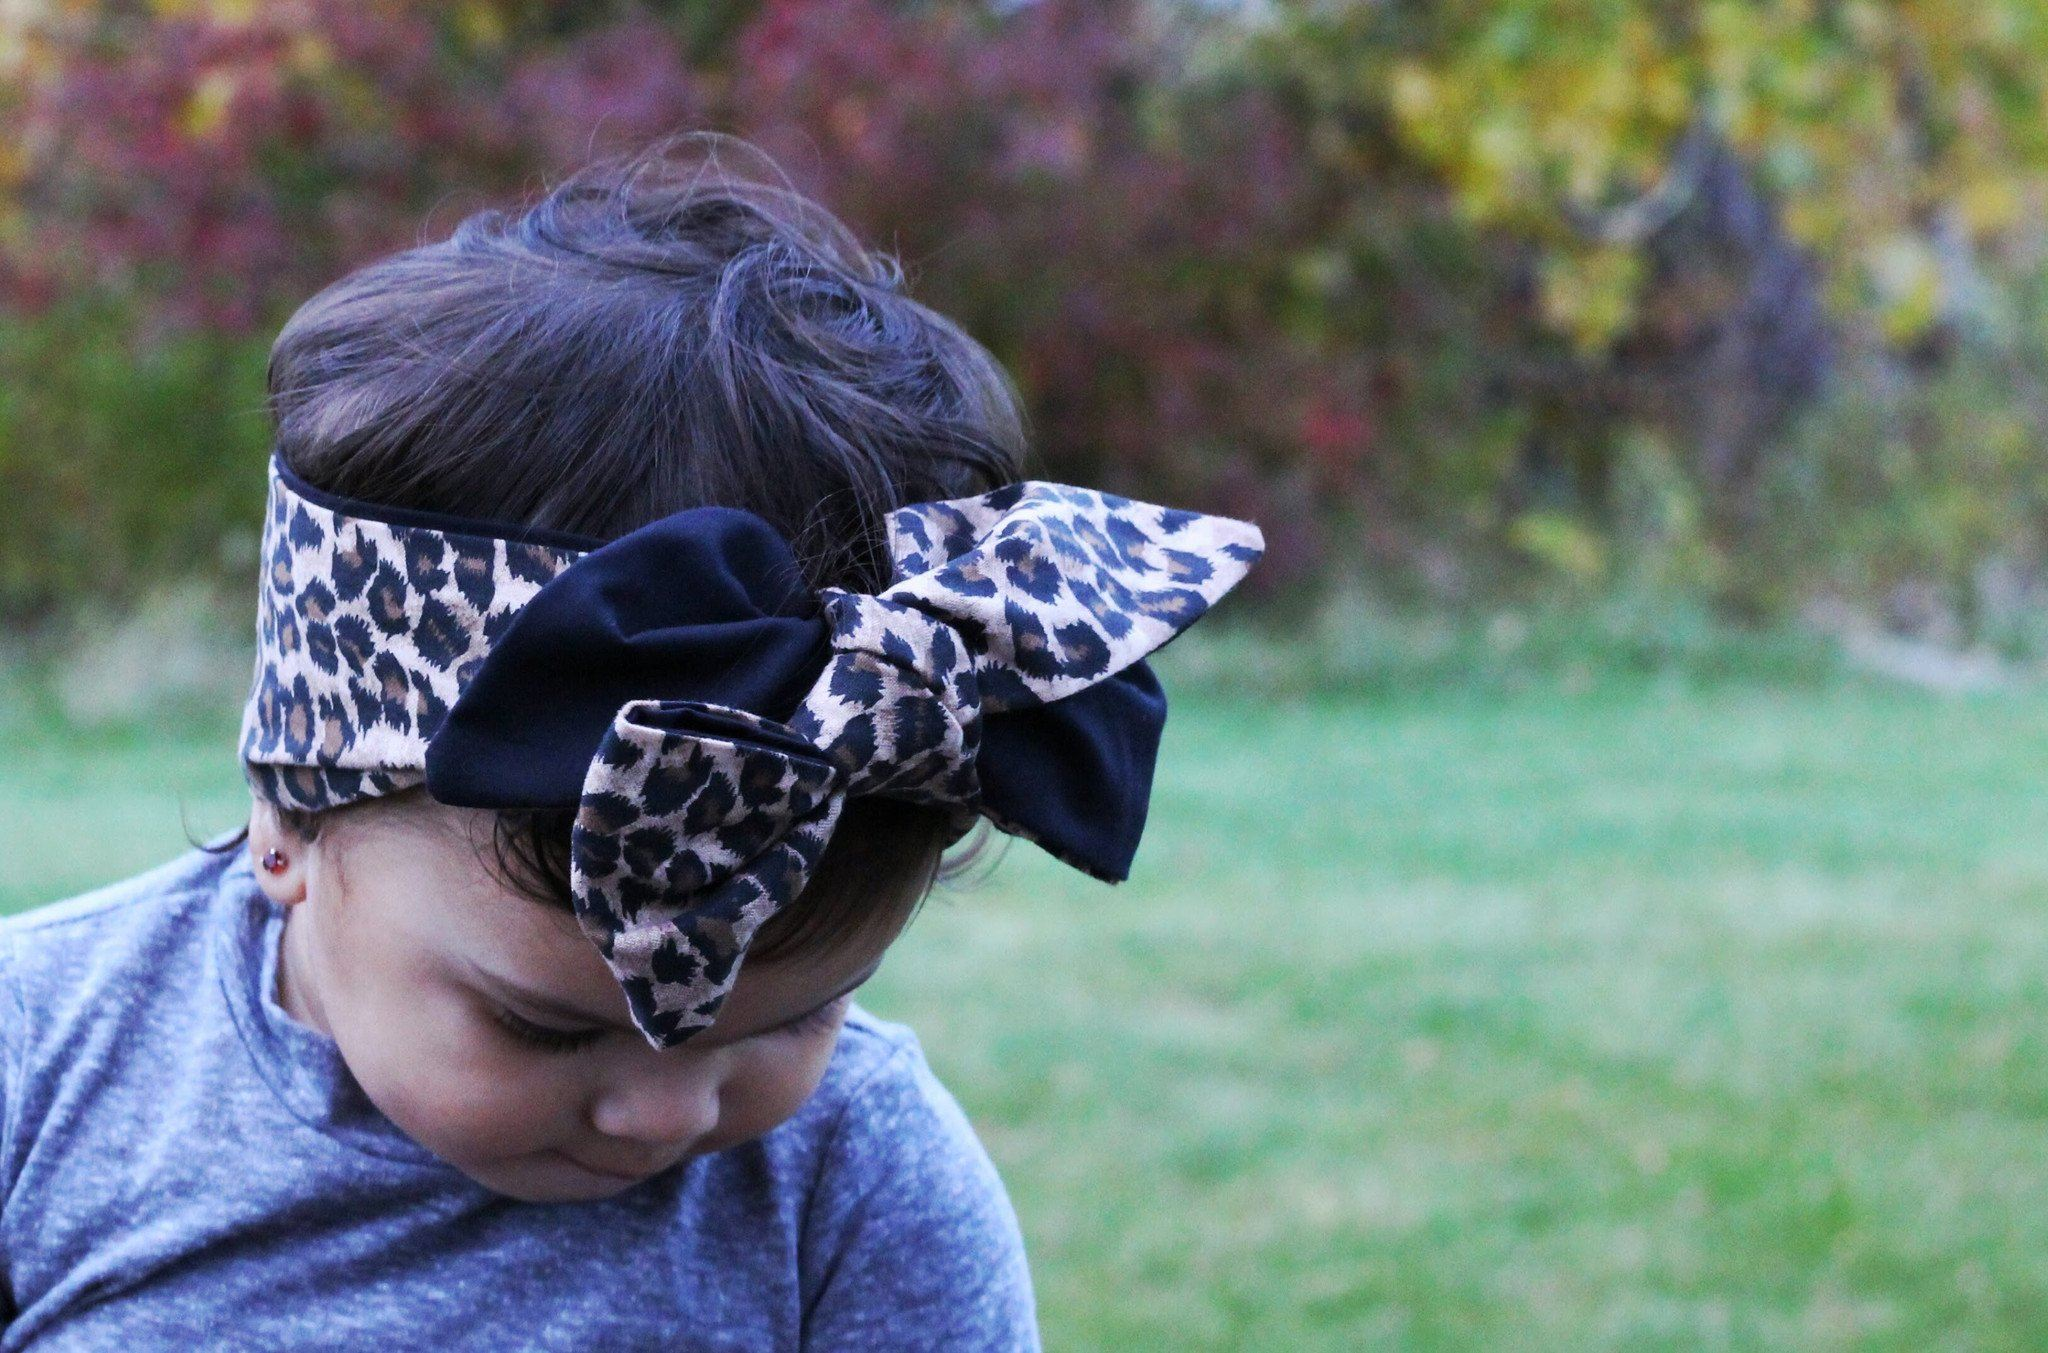 Head Wrap - Baby Hair Accessories - Cheetah Print Headwrap